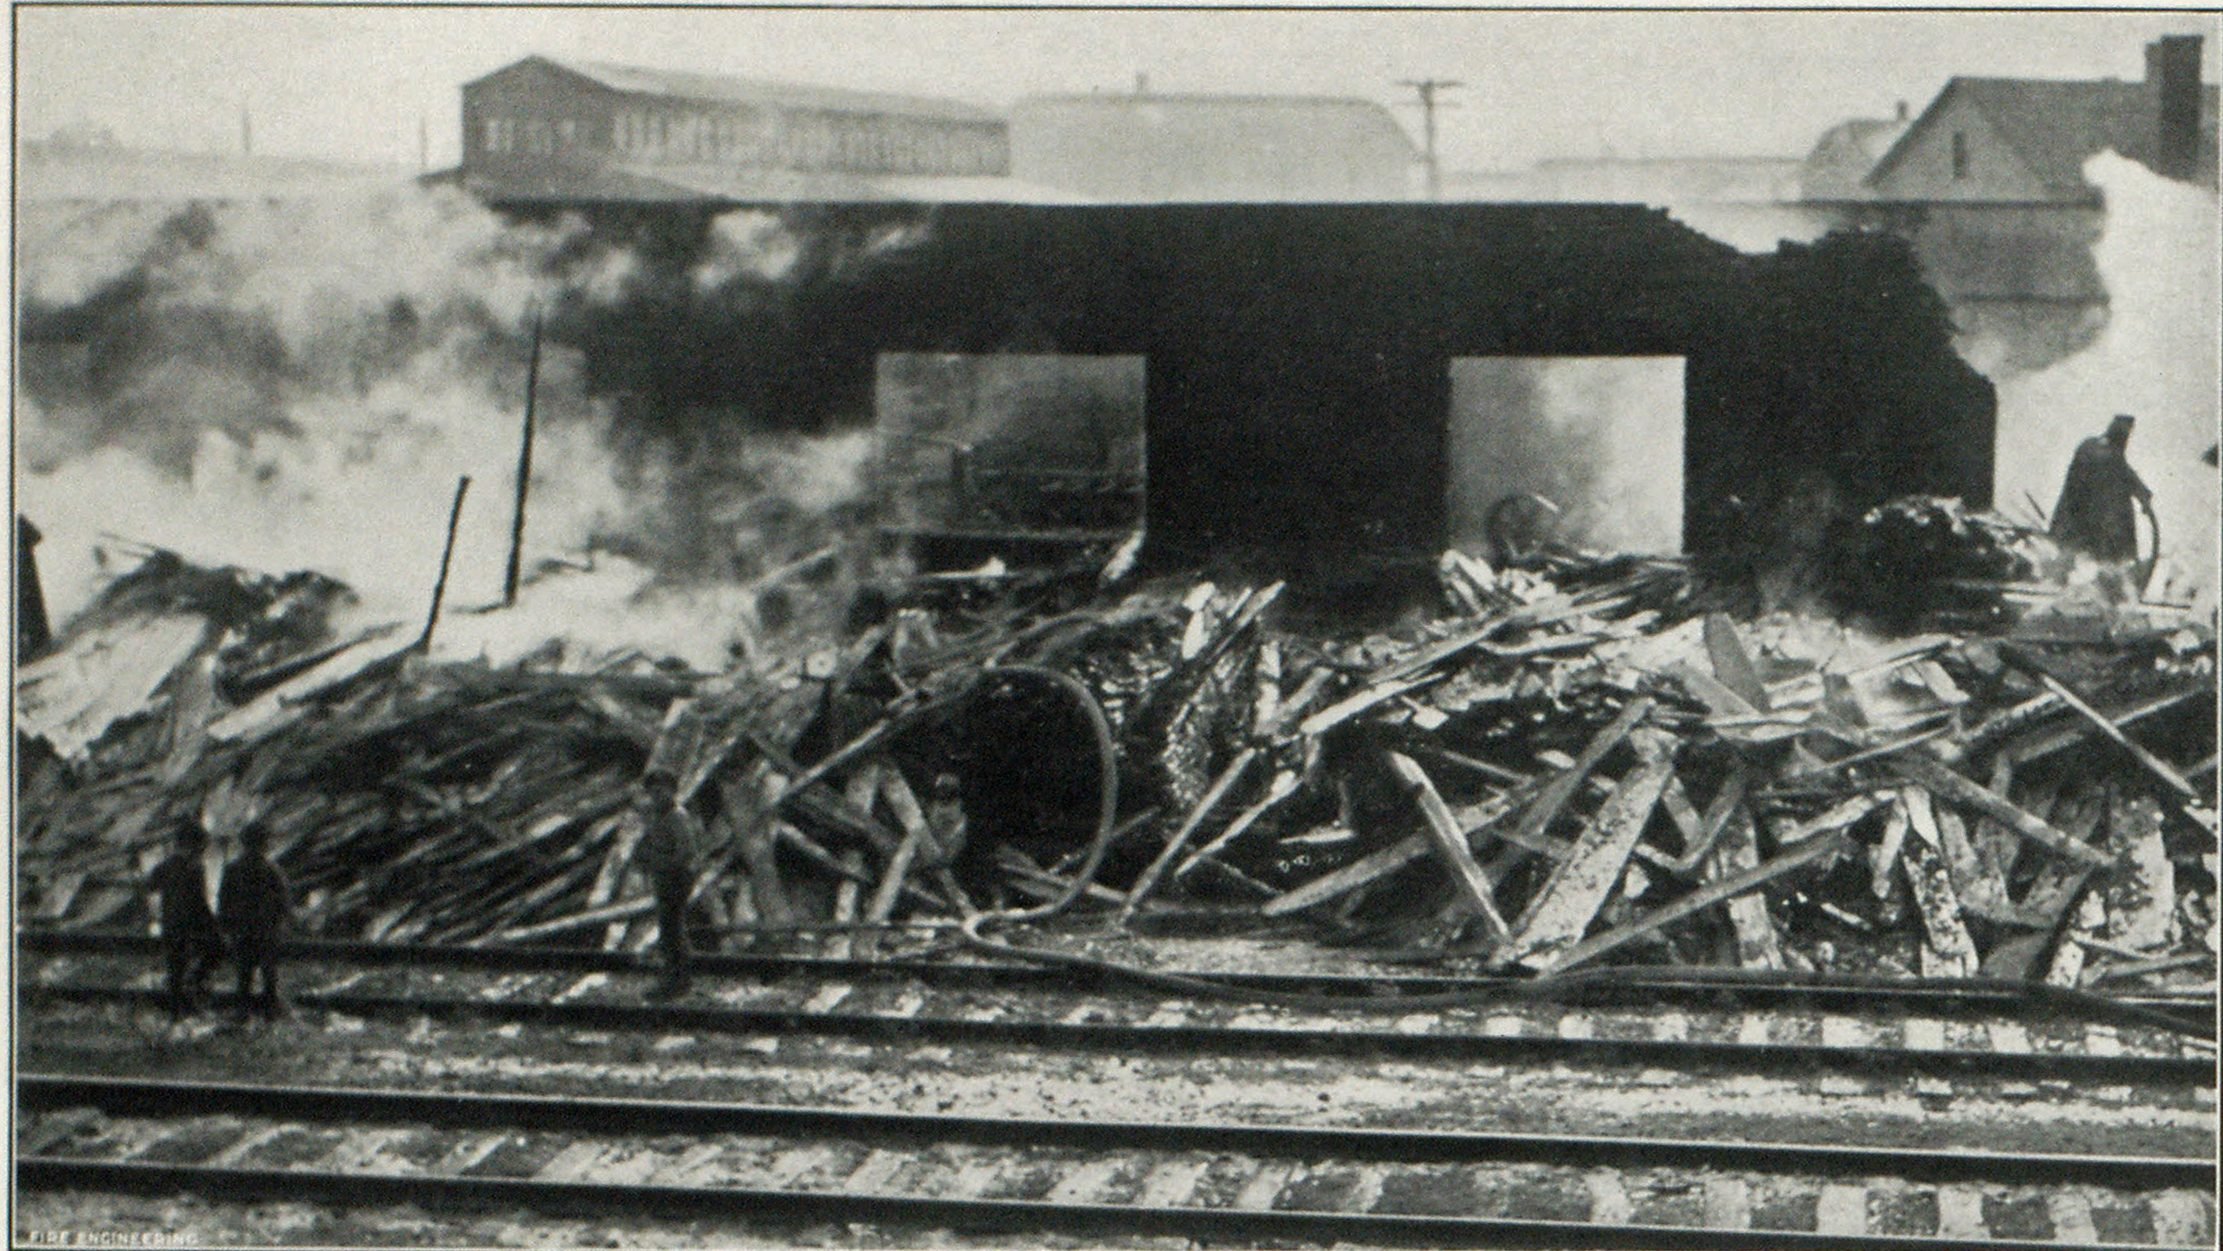 Fire in Big Sash and Door Factory at Hammond, Ind., which for a Time Threatened a Large Manufacturing Area Surrounding It with Destruction, and Necessitated Calling on Two Other Cities for Assistance.